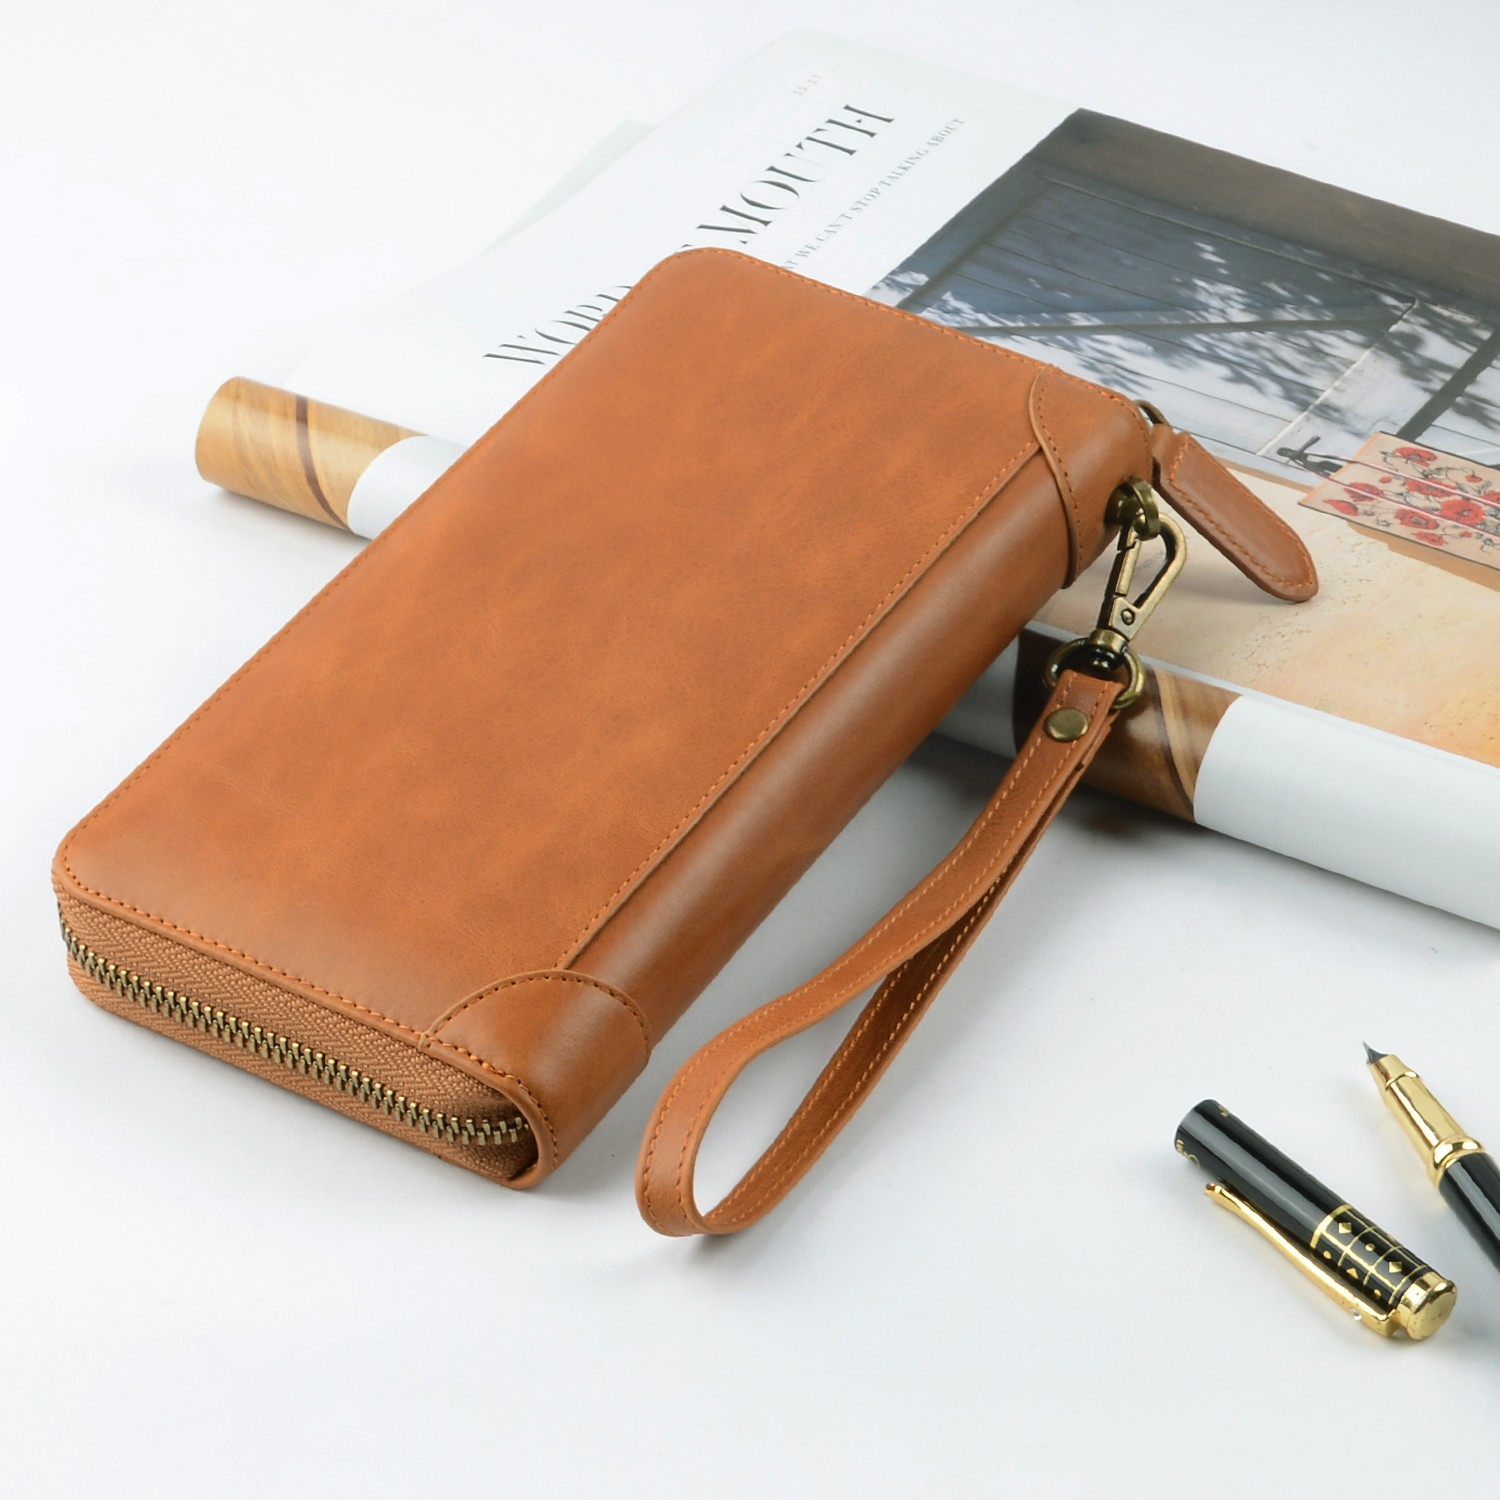 AIVI soft leather card holder wallet mens supply for phone XS Max-6